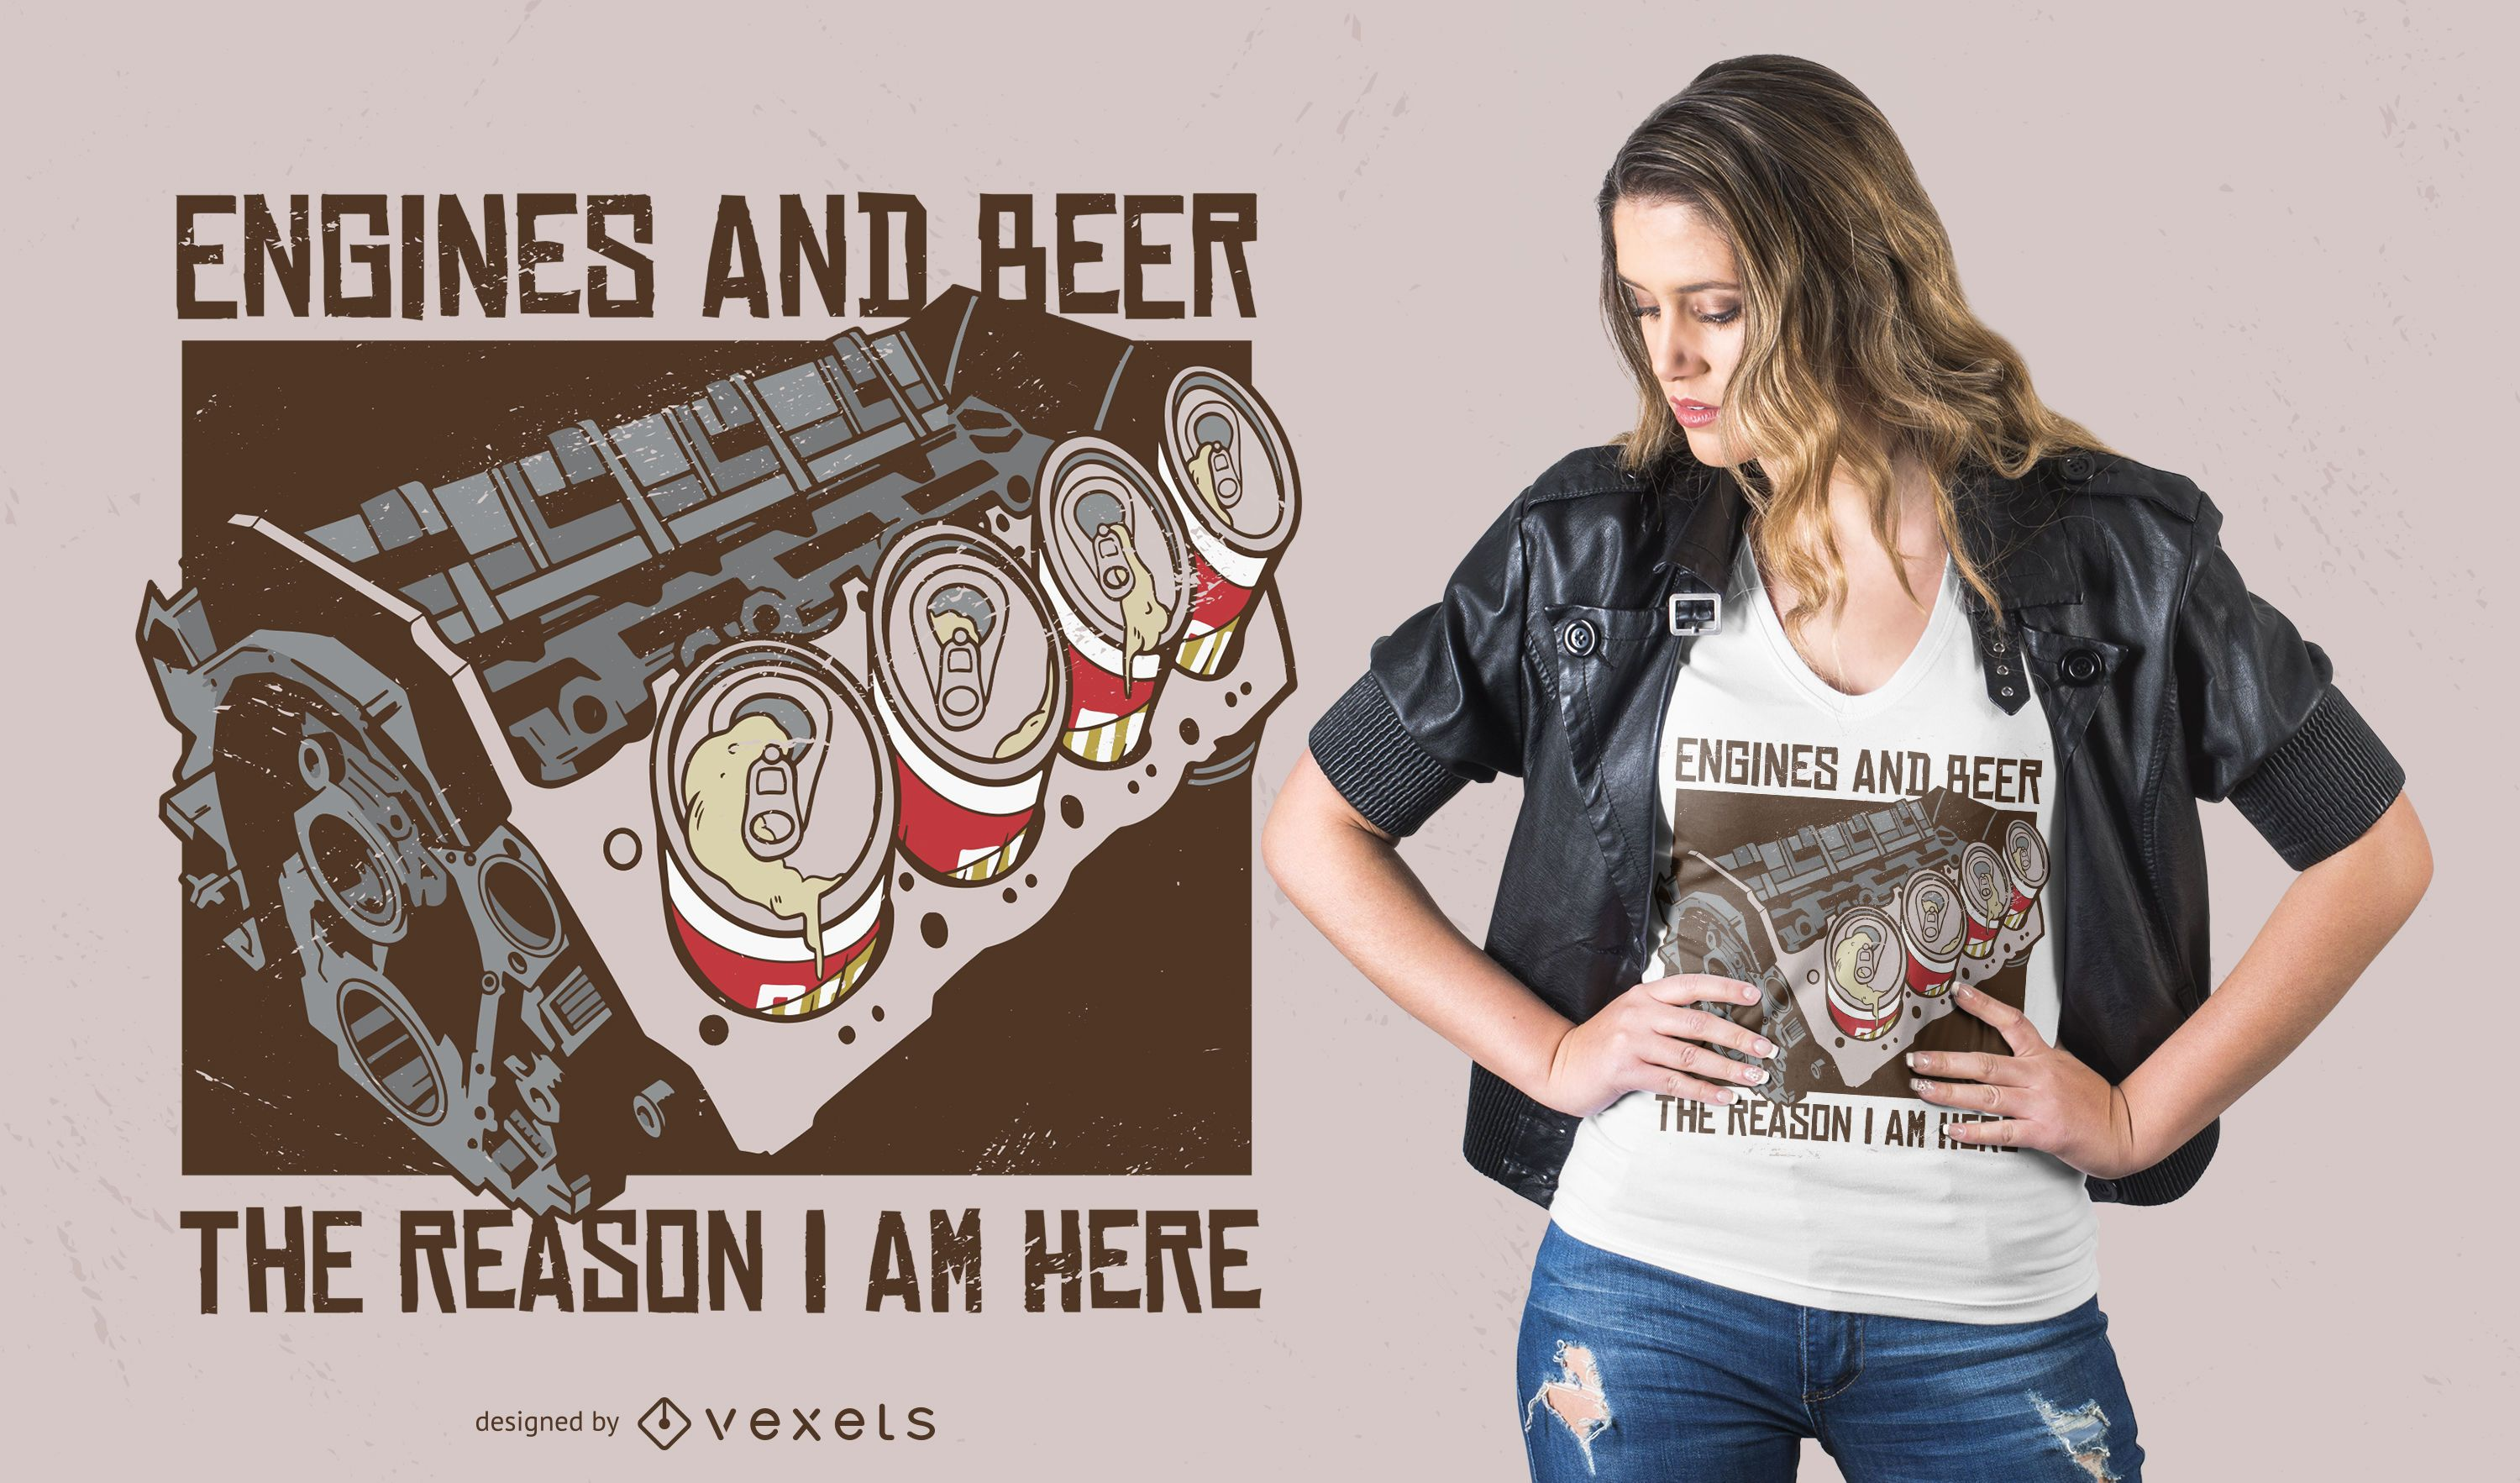 Engines and beer t-shirt design